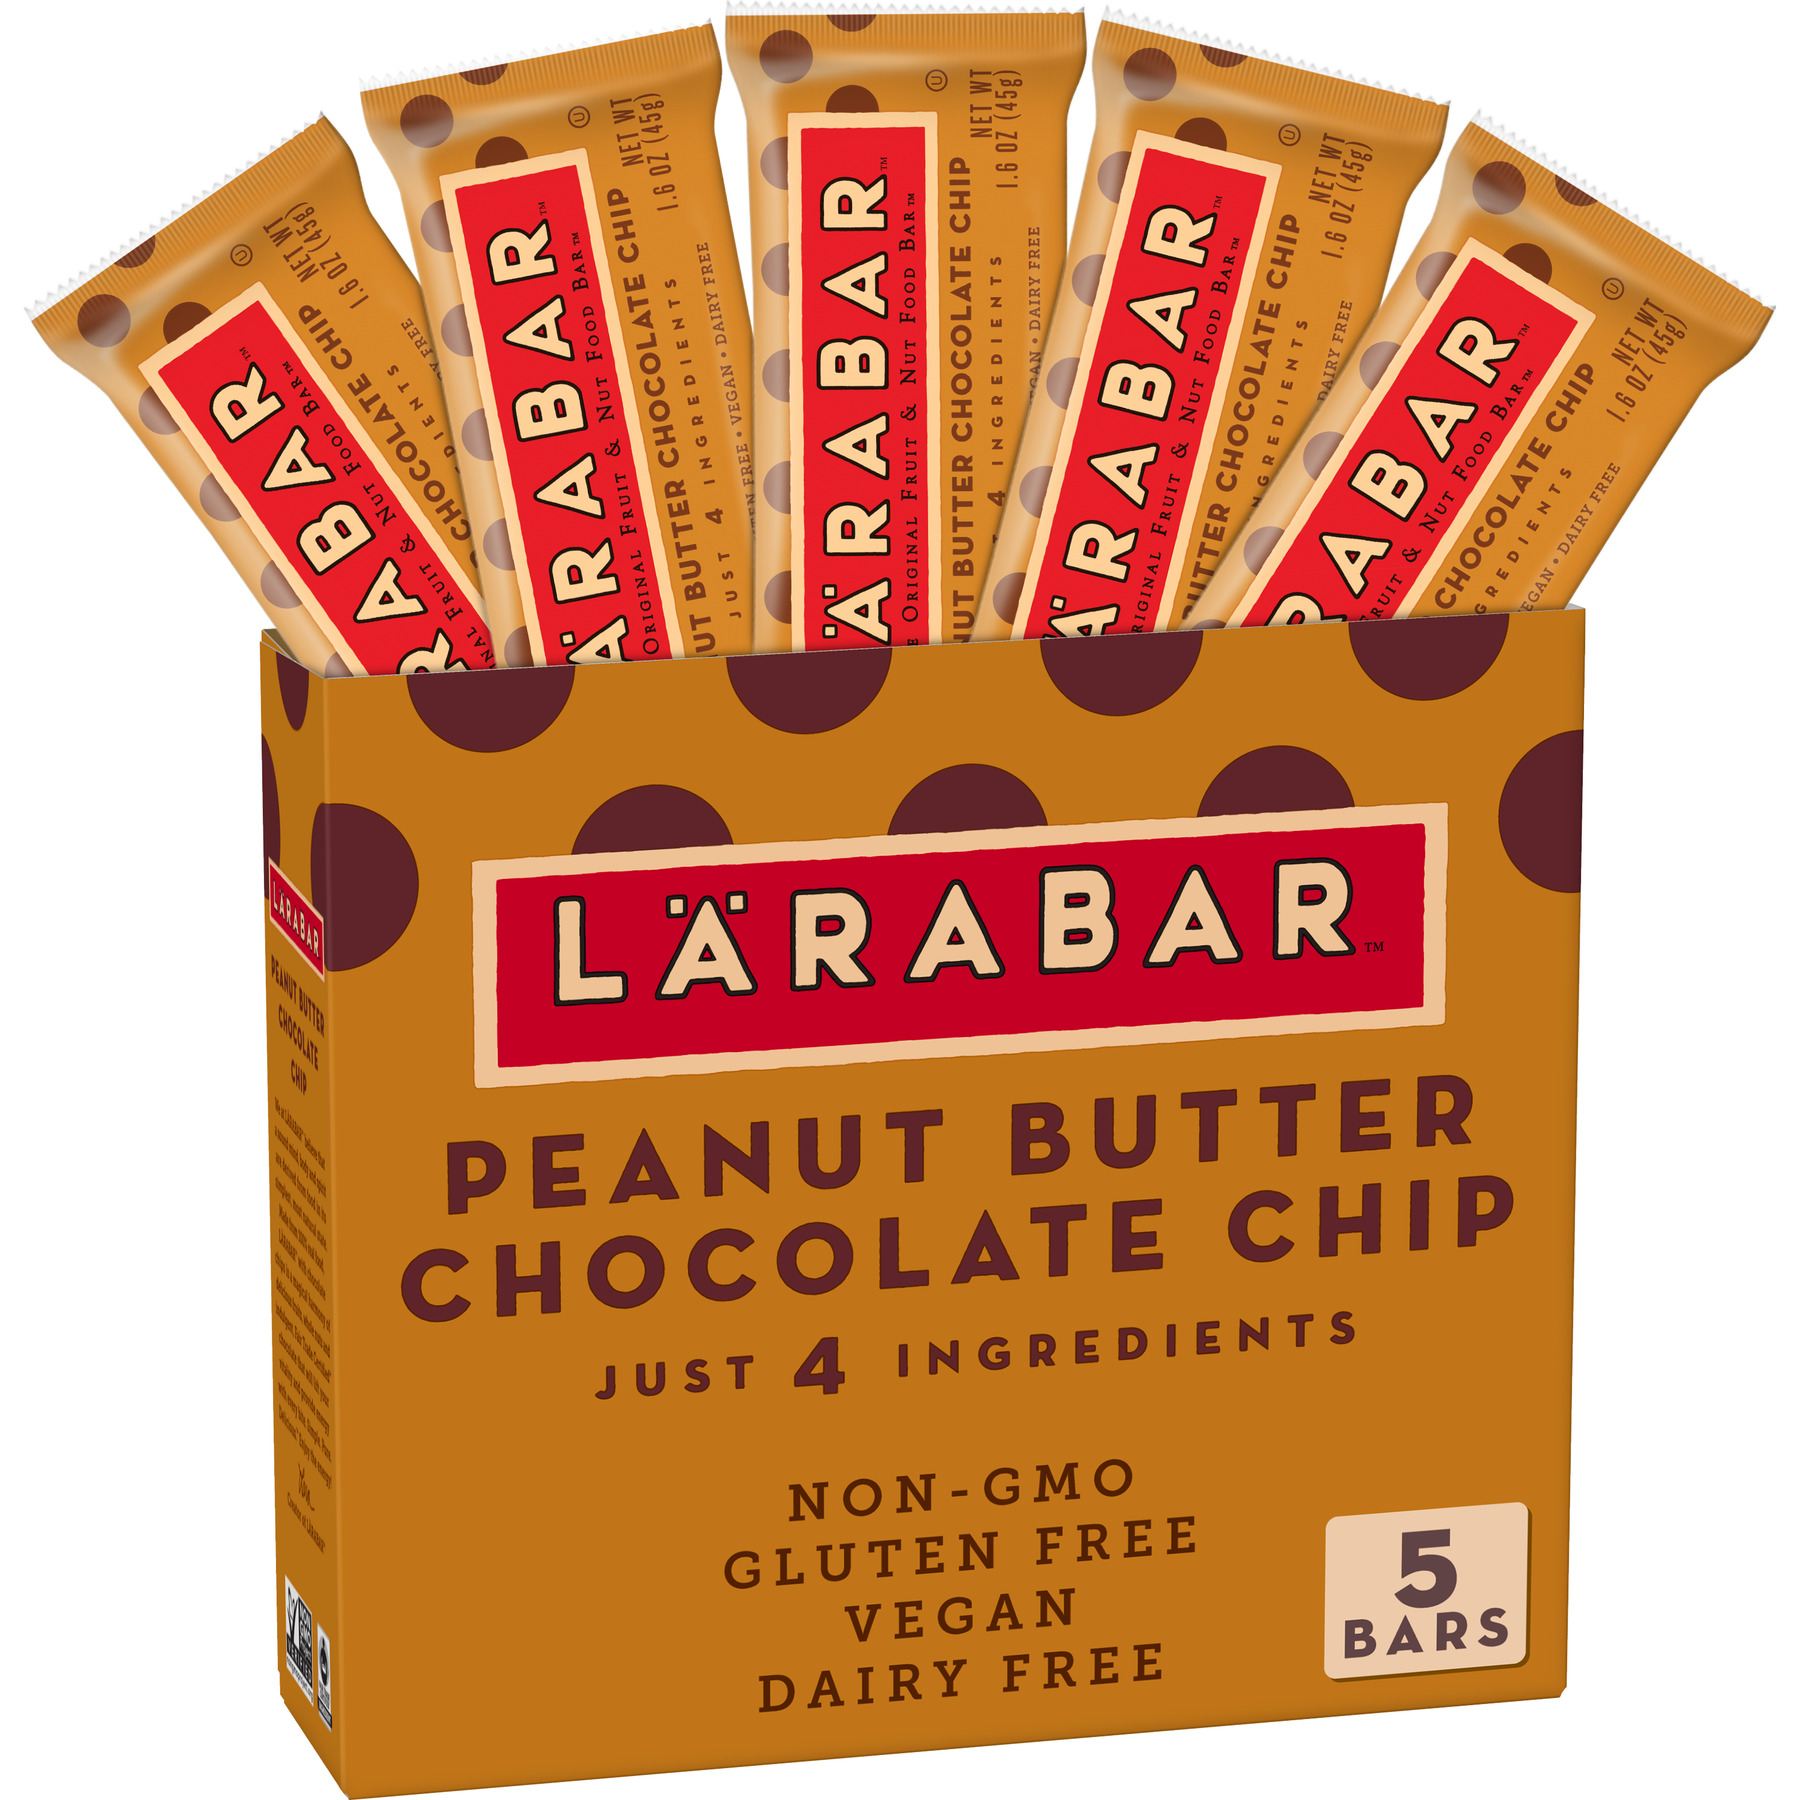 Larabar Gluten Free Bar, Peanut Butter Chocolate Chip, 1.6 oz Bars (5 Count)